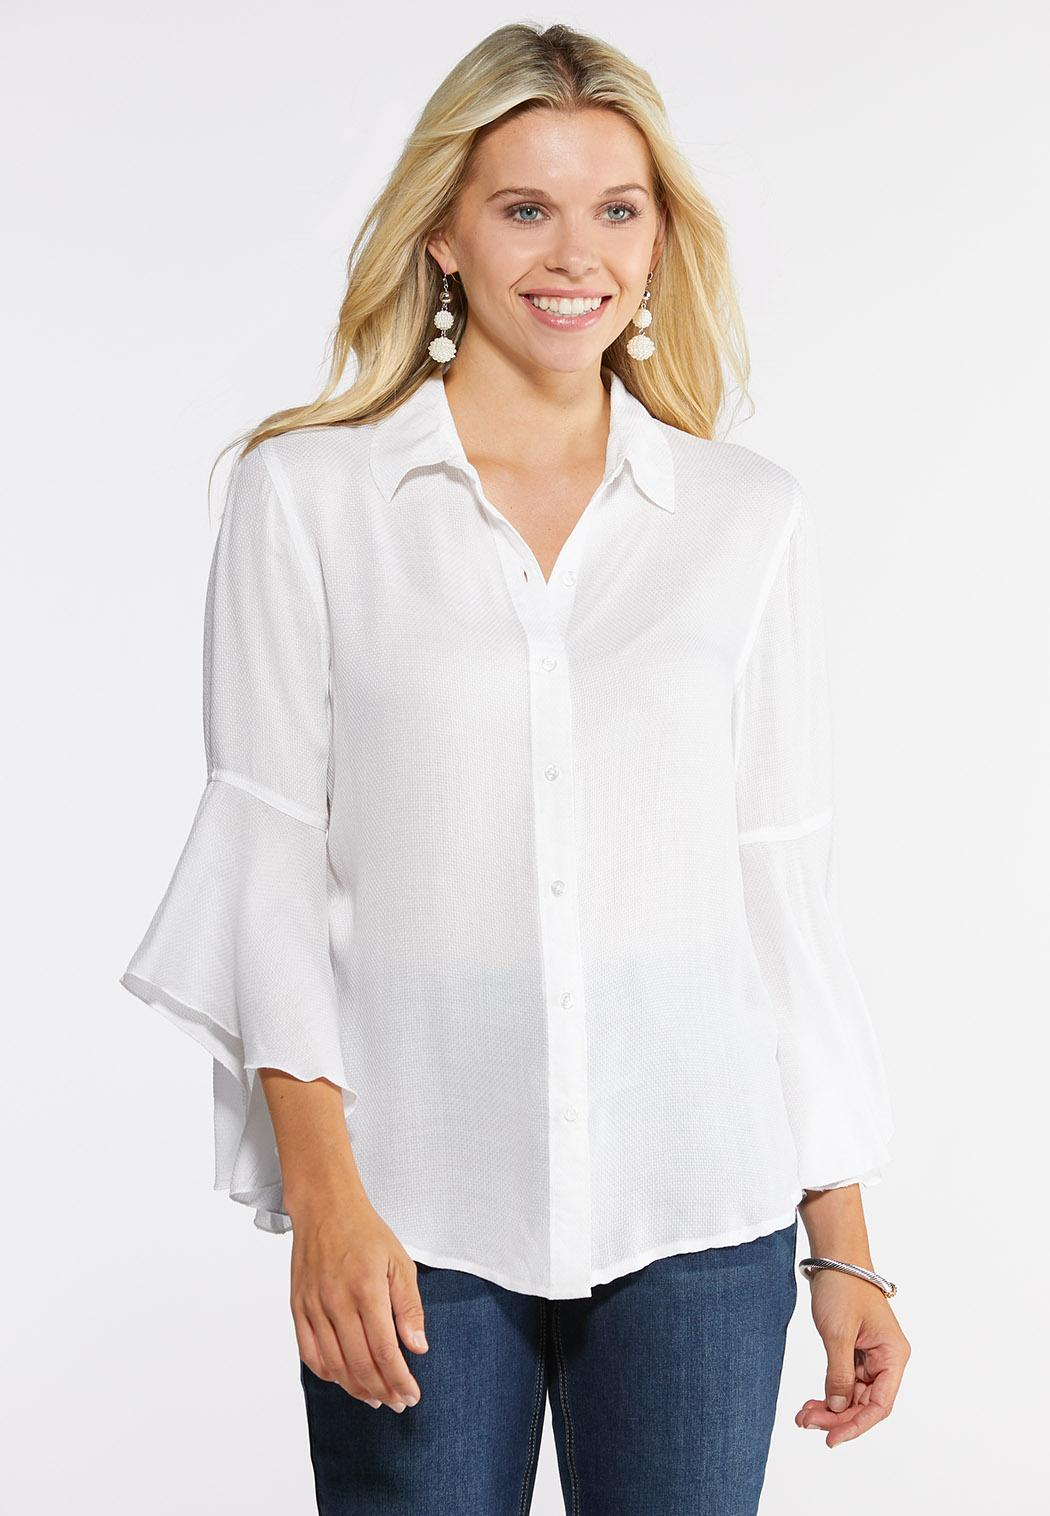 Plus Size Ruffle Button Down Top Shirts & Amp ; Blouses Cato Fashions